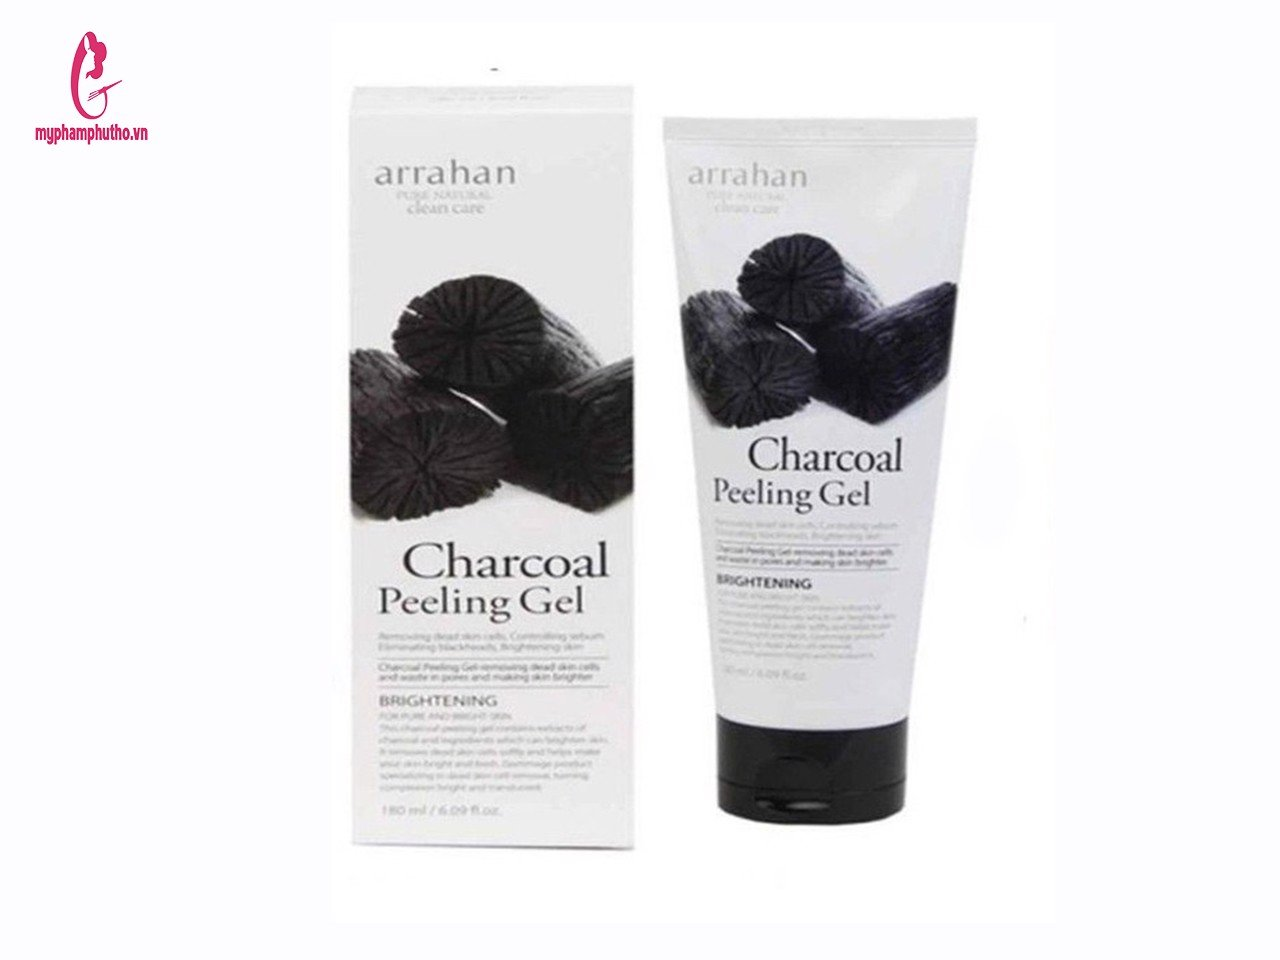 Tẩy da chết Arrahan charcoal Peeling Gel Than hoạt tính  Product Tabs  In Barcode  Product Recommend